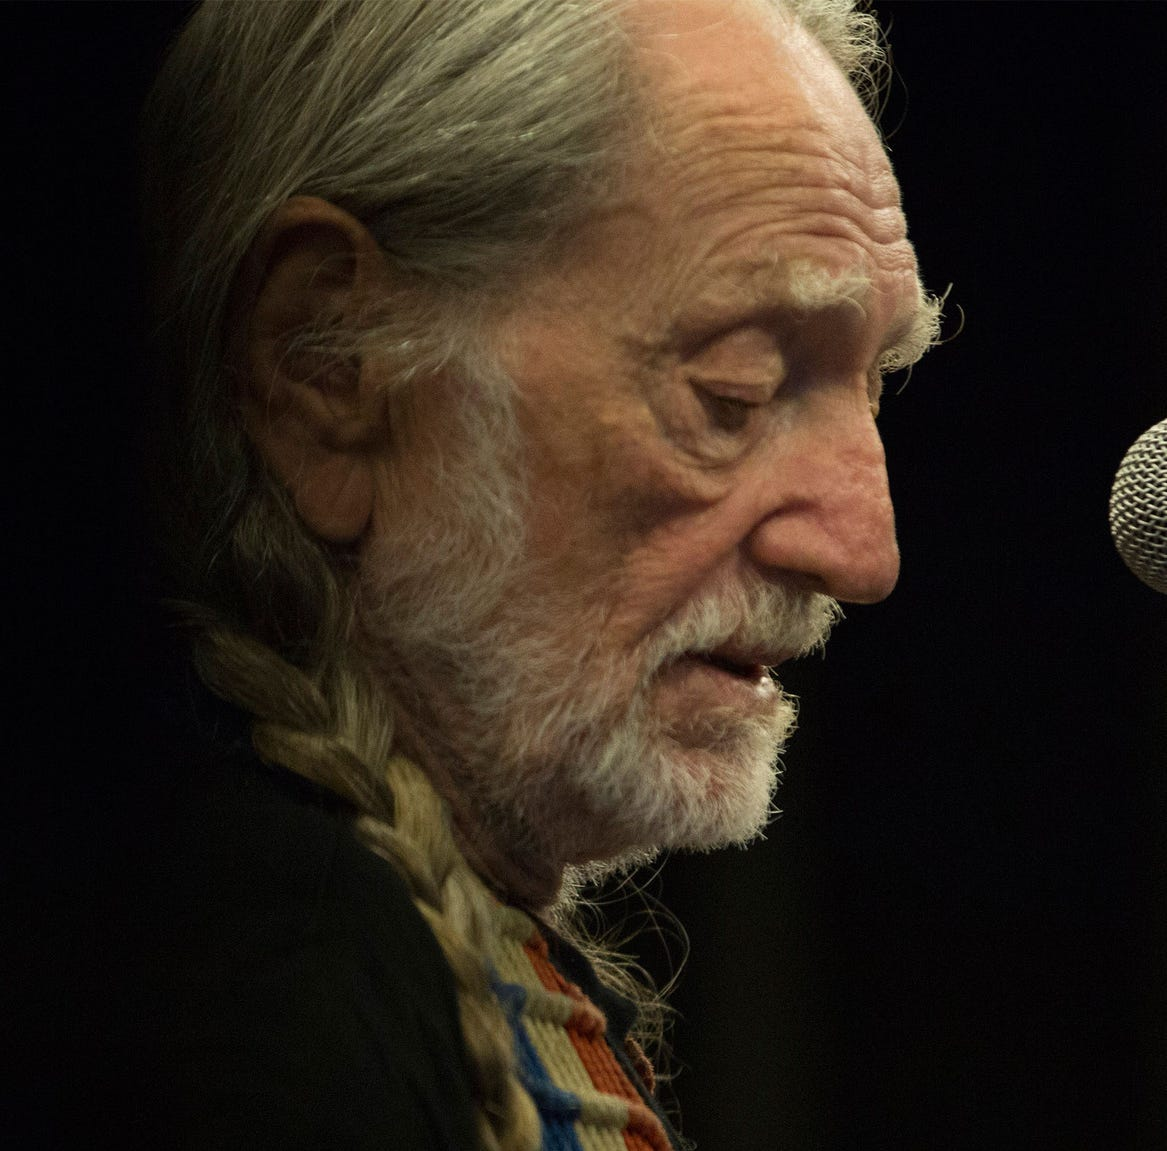 Willie Nelson & Family tour 'On The Road Again' to Montgomery